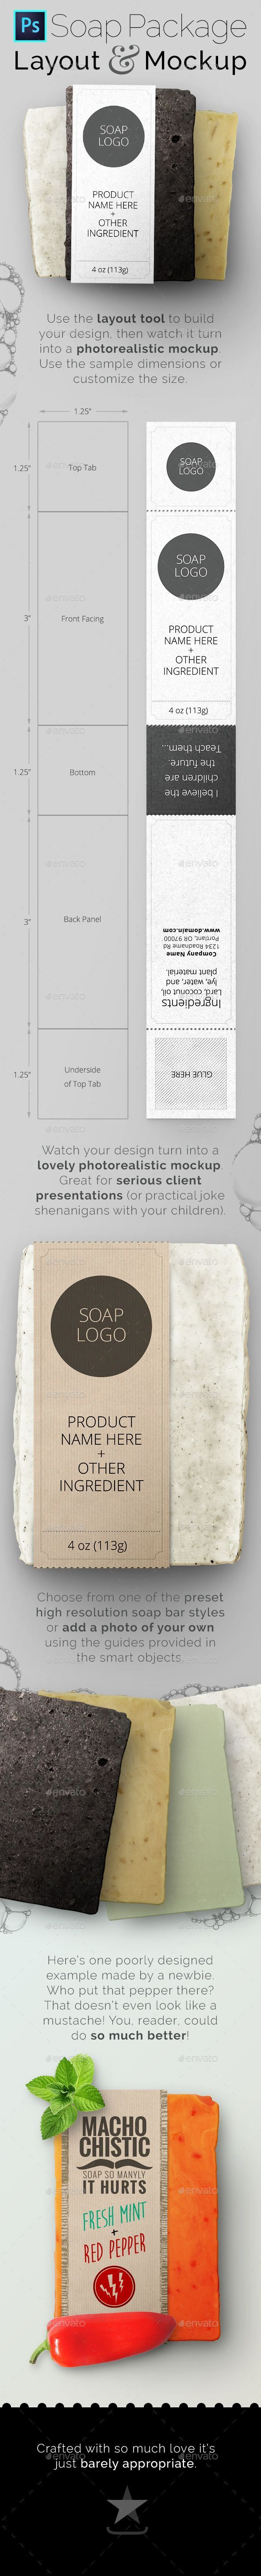 Soap Bar Package Tool and Mockup - Packaging Product Mock-Ups